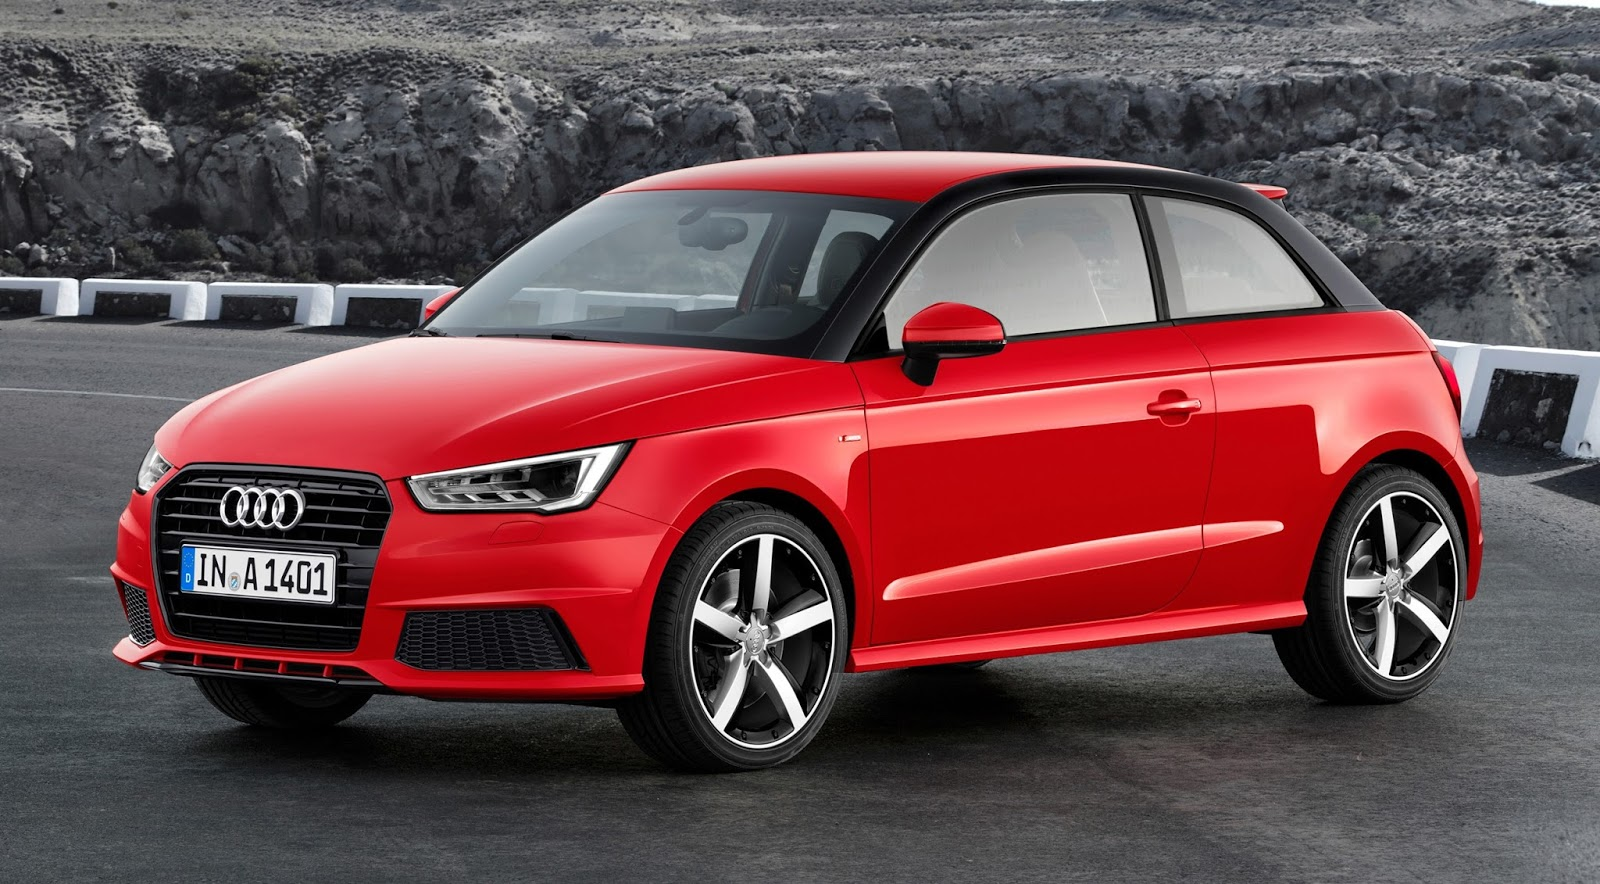 audi a1 2017 check out the details of the new model top 10 listverse car review ufo alien. Black Bedroom Furniture Sets. Home Design Ideas